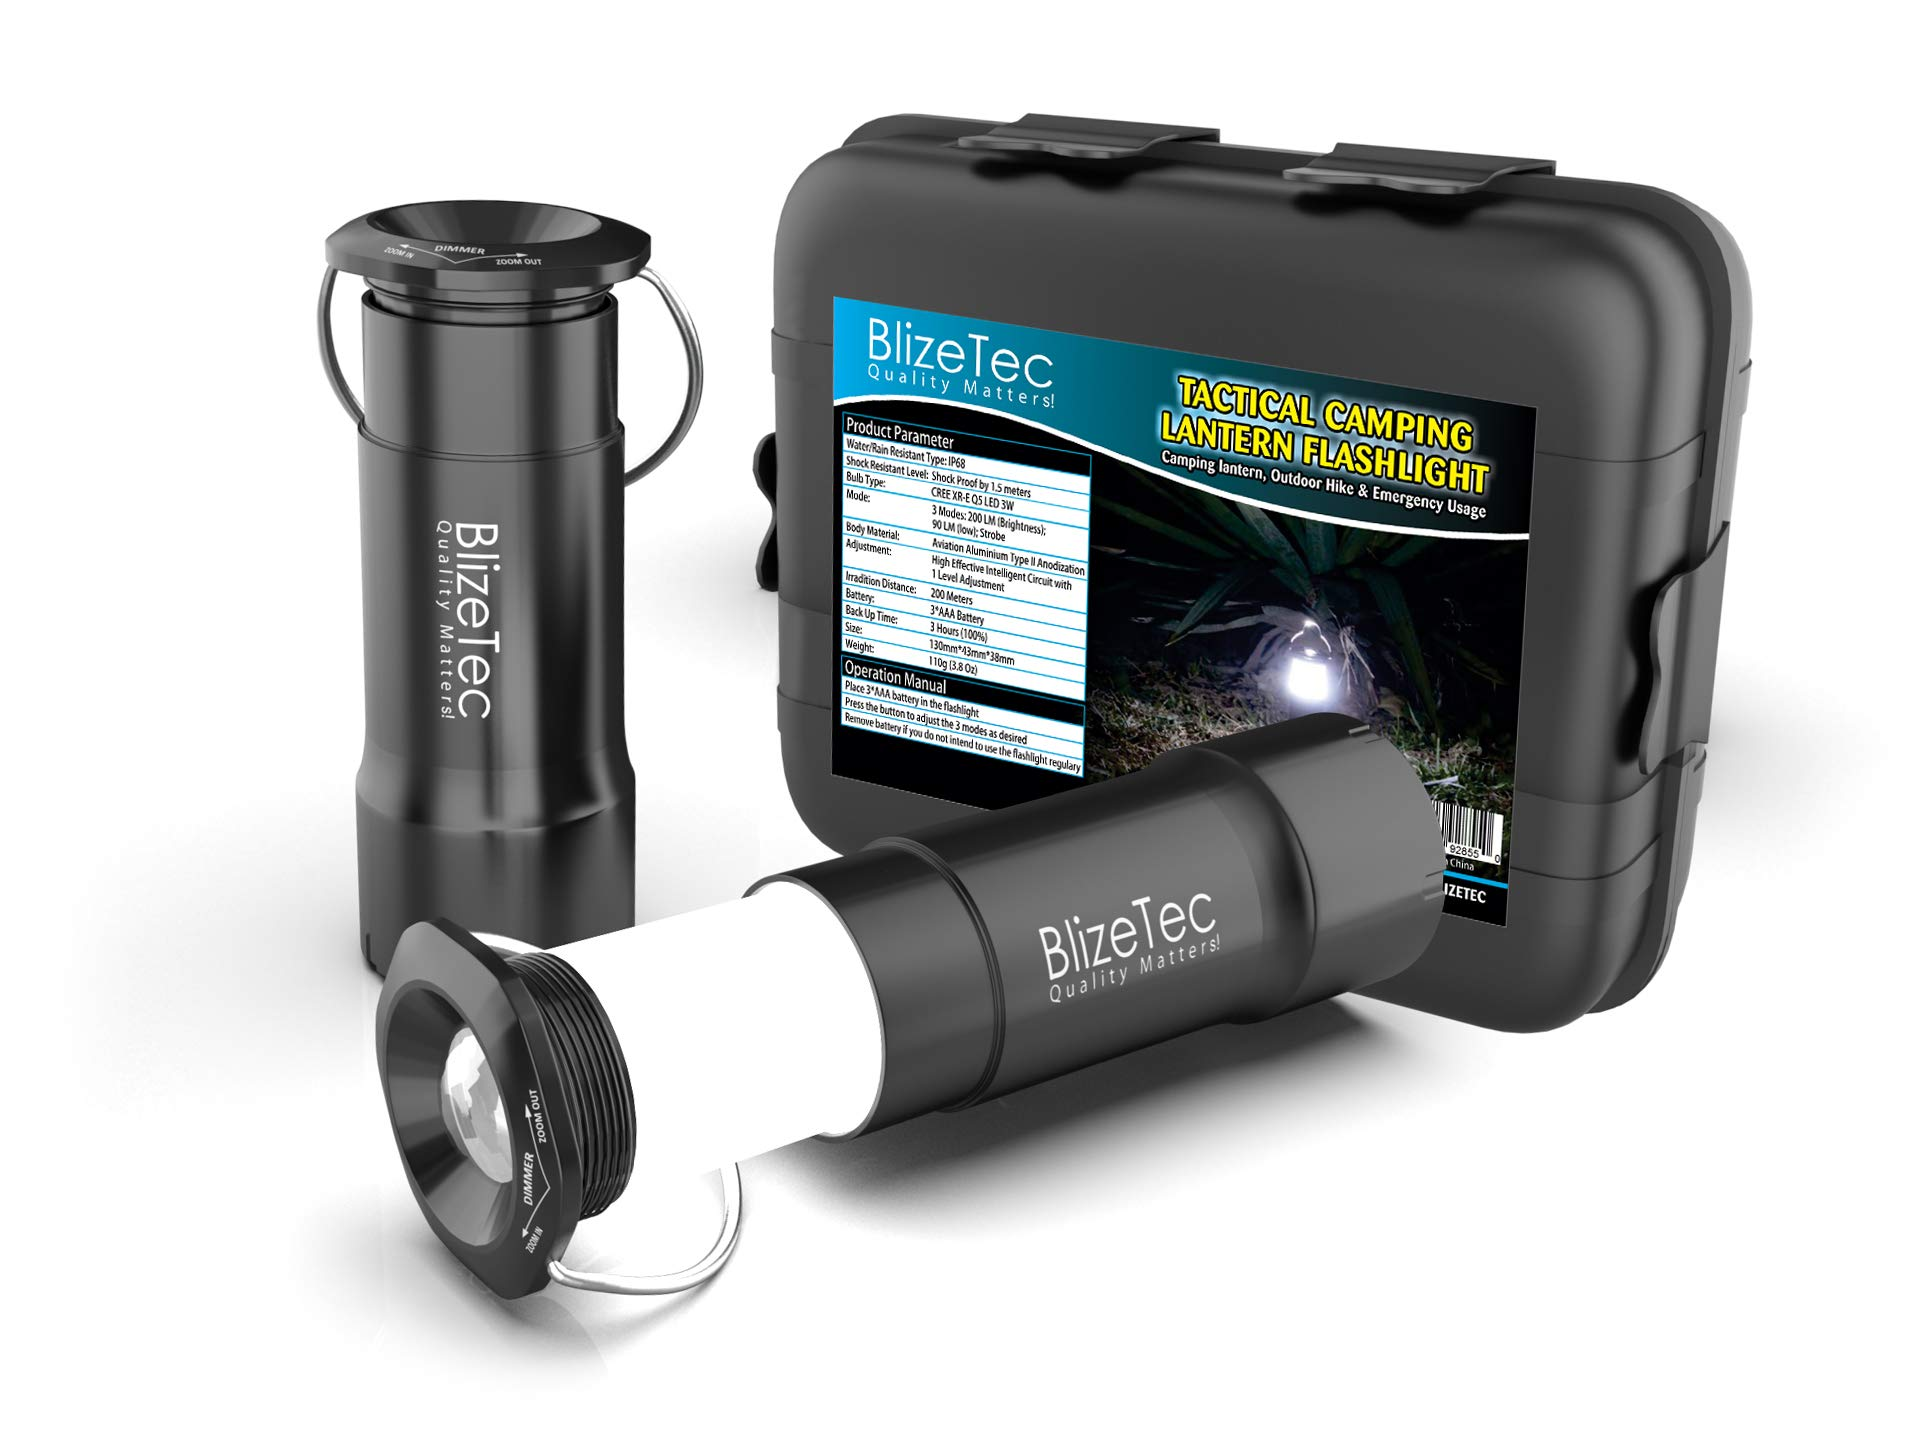 BlizeTec Camping Tactical Lantern Flashlight: Emergency Survival Creed LED Powered by 200 Lumen Output; Rainproof, Shockproof with 3 Adjustable Modes; Gift Case and Survival Hand Book Included by BlizeTec